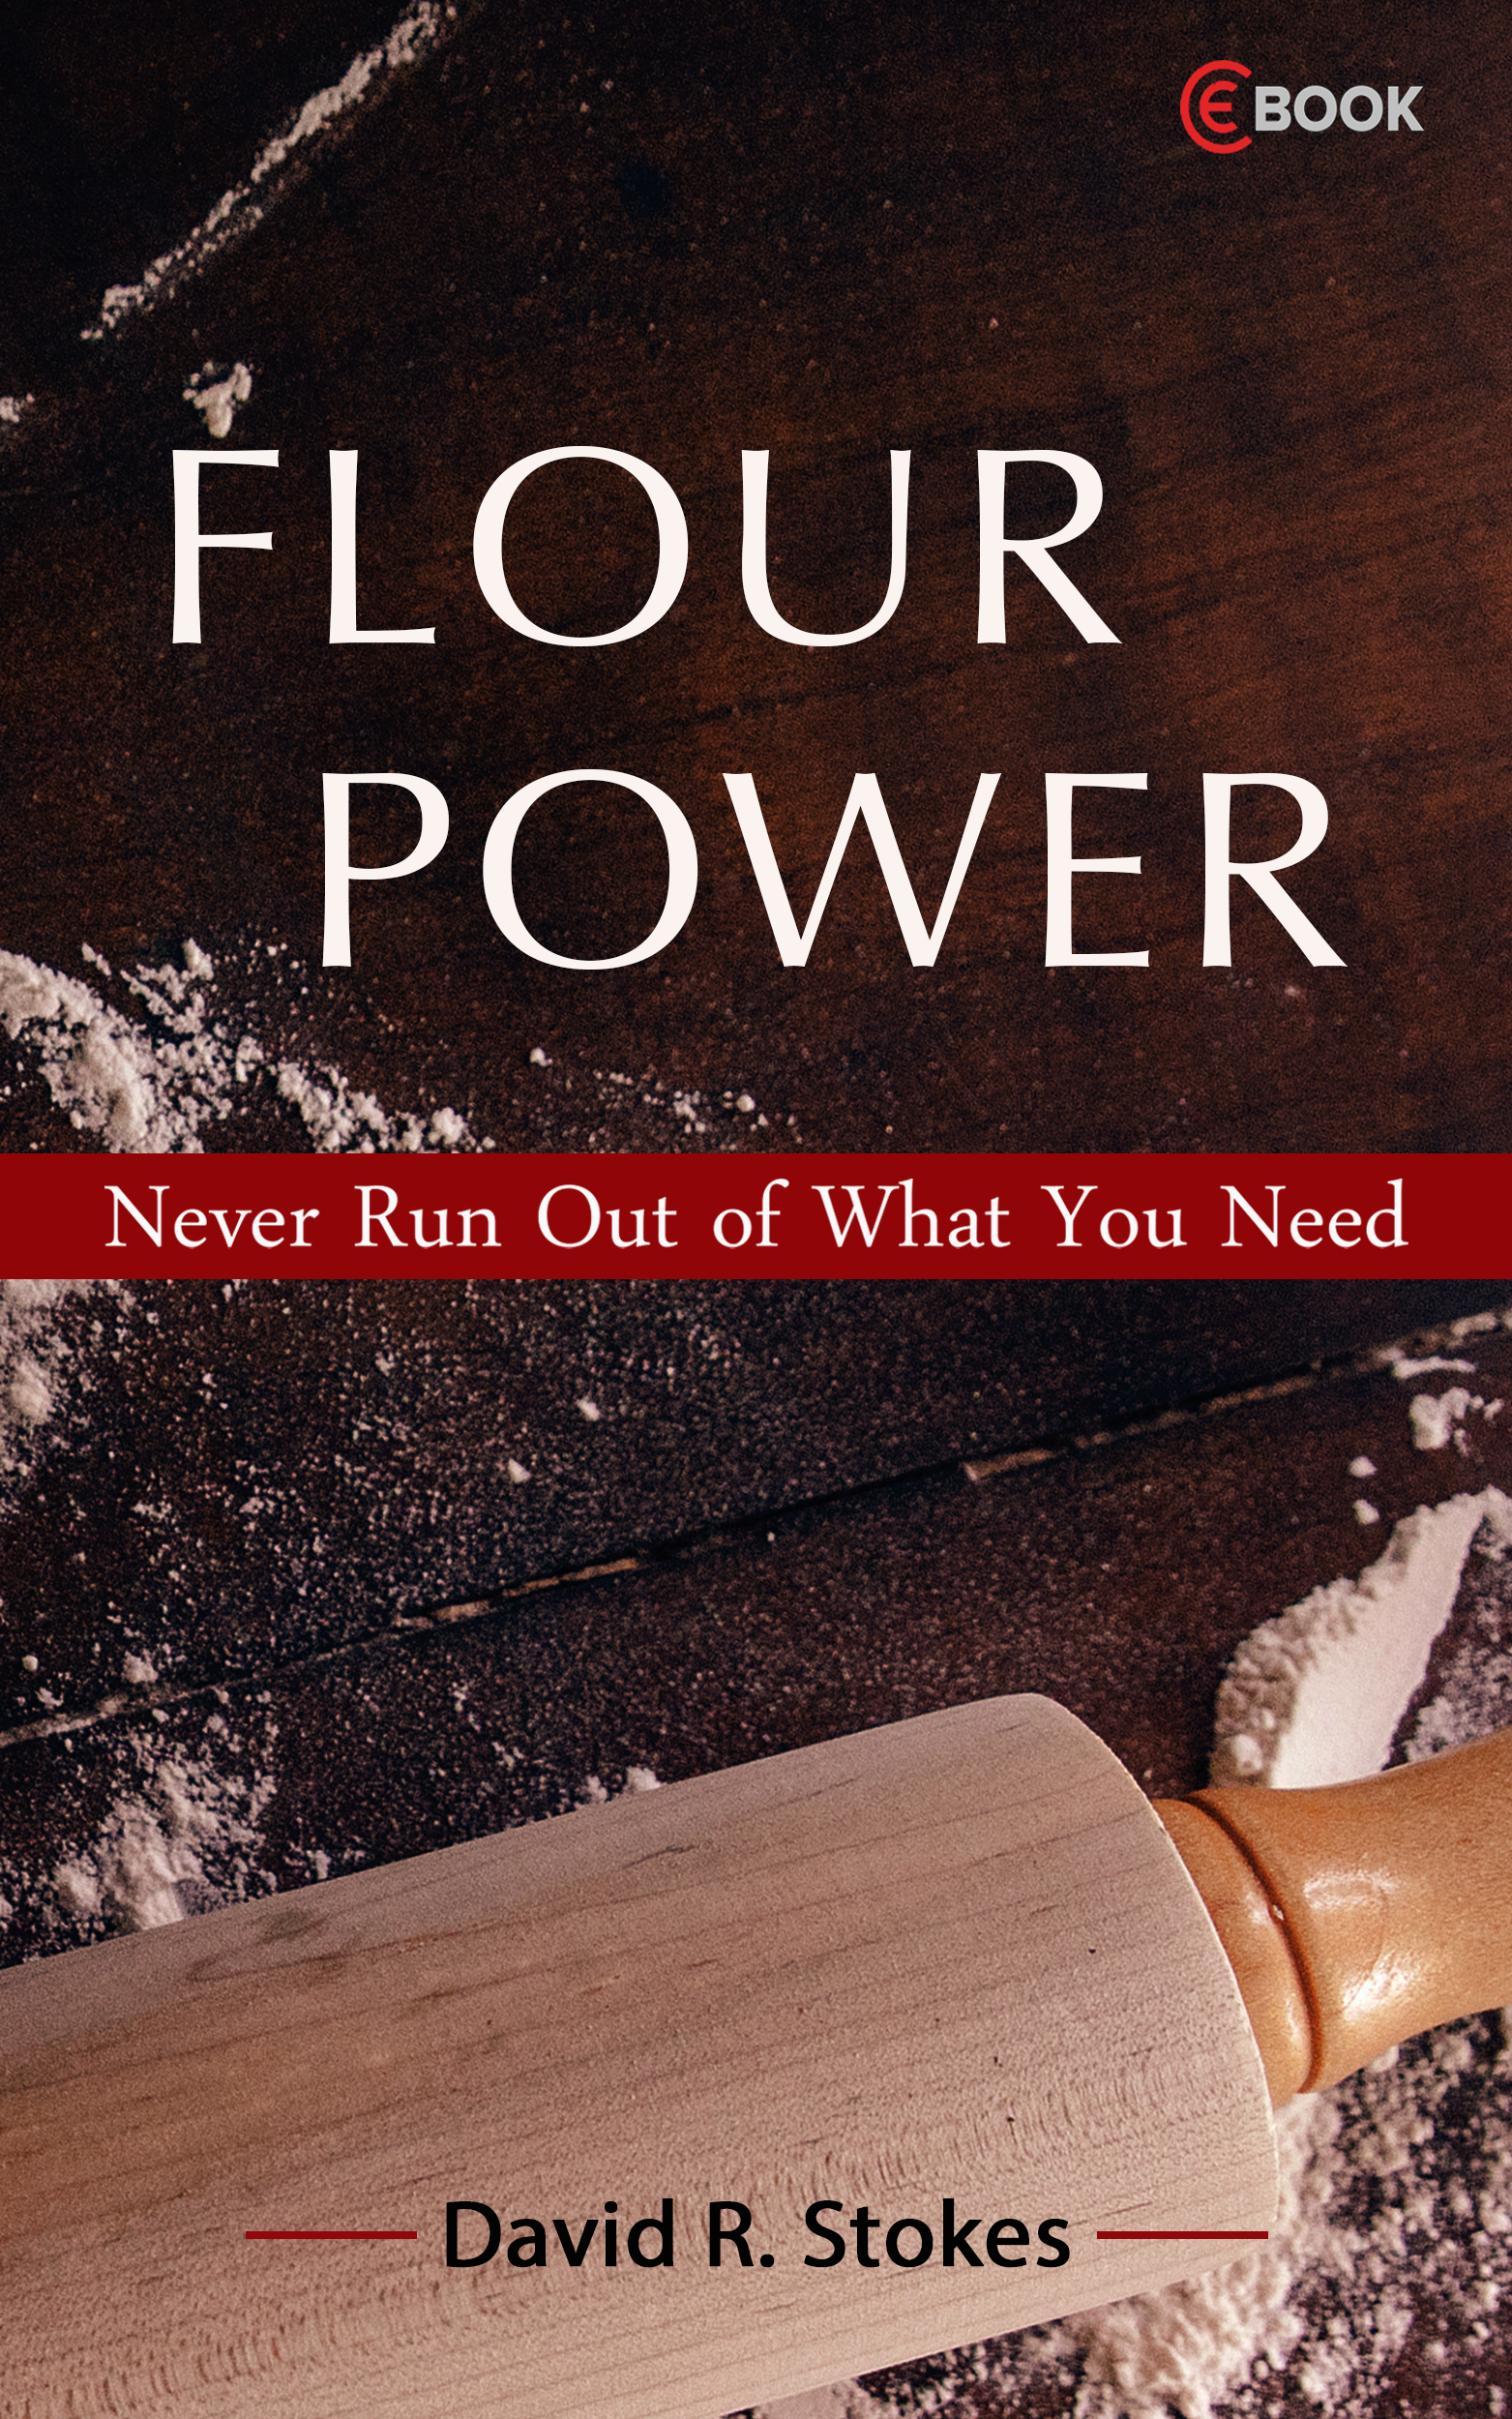 Flour Power E BOOK Cover.jpg